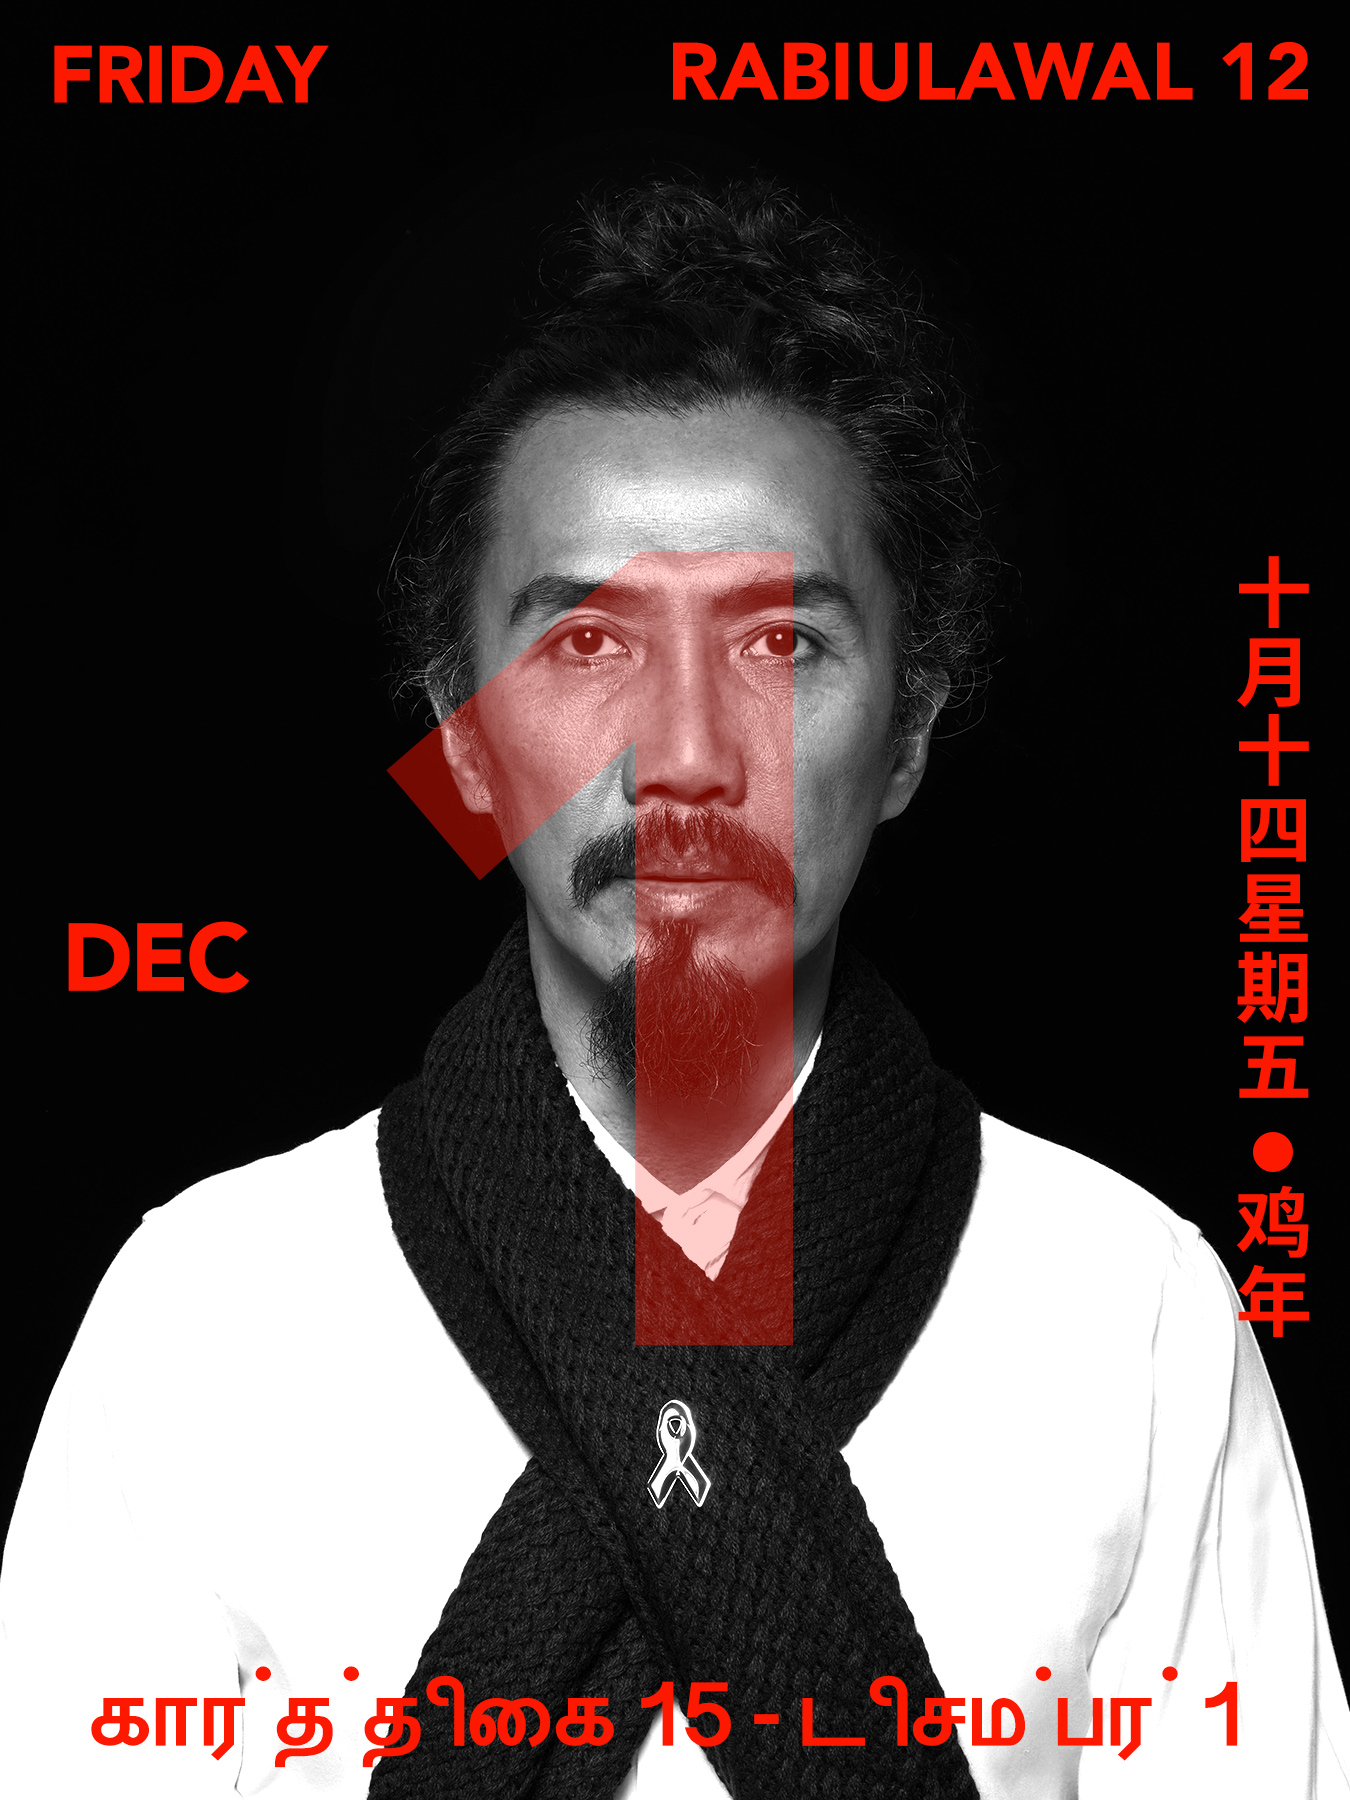 1 Dec 2017 World Aids Day Derong is wearing a red scarf with the red ribbon pinned on it